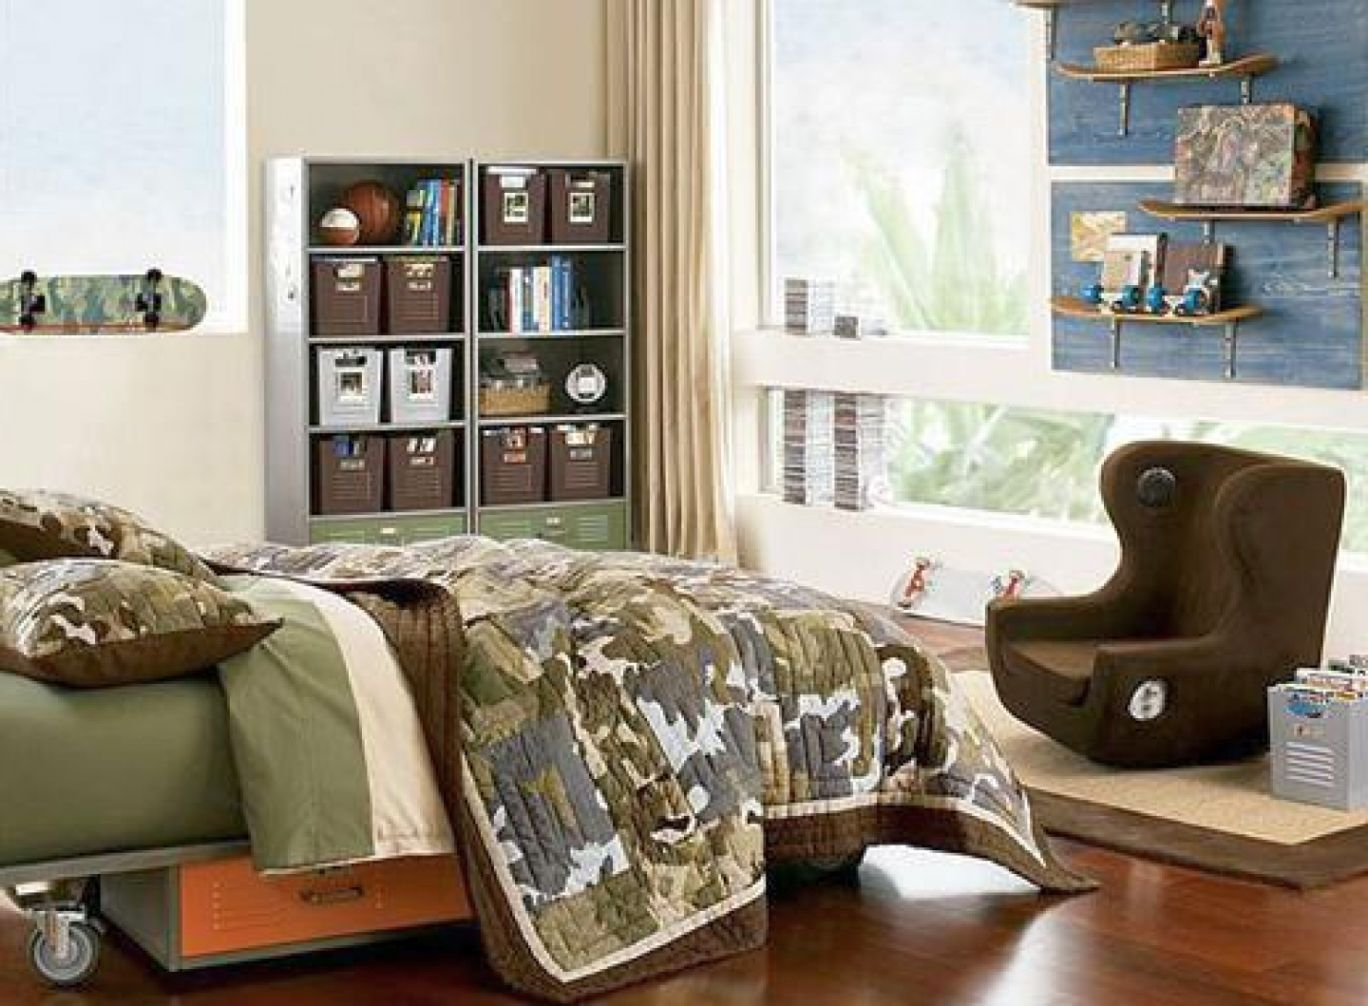 12 Superb Room Decor Ideas for Teenage Boys on Teenage Room Decor Things  id=34851